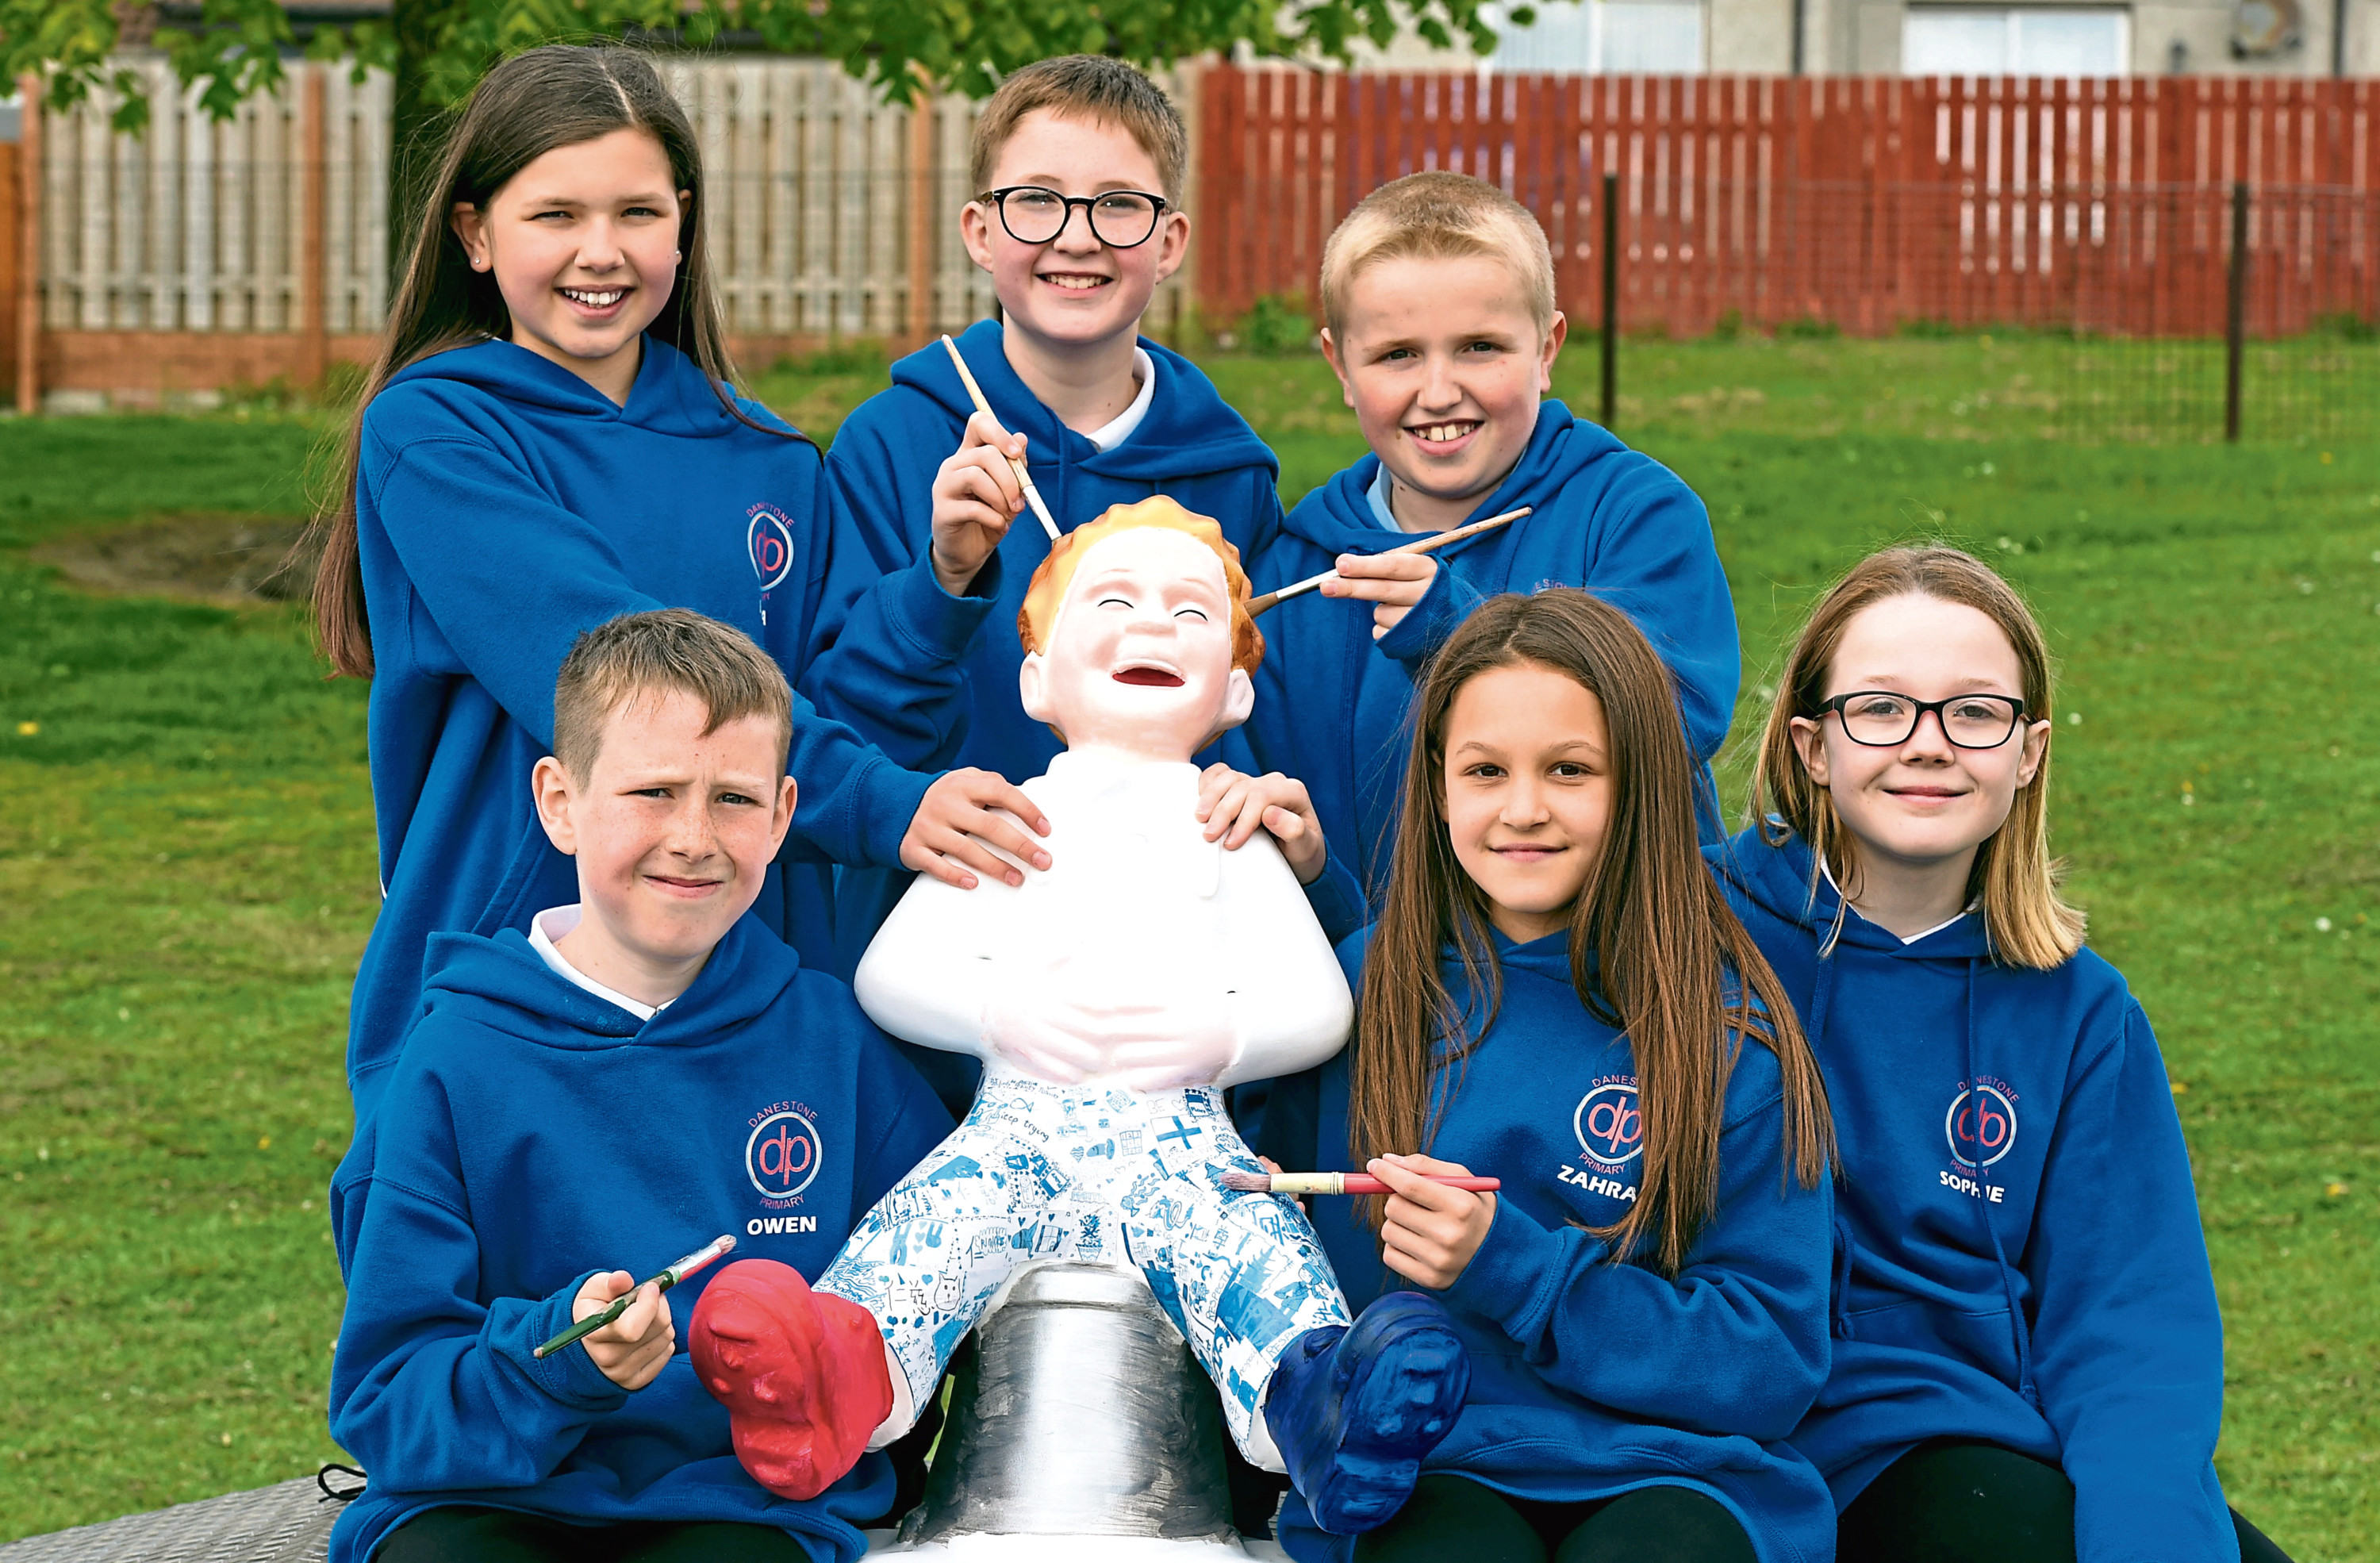 Pupils at Danestone Primary School are having a fundraiser for the Oor Wullie Bucket Trail